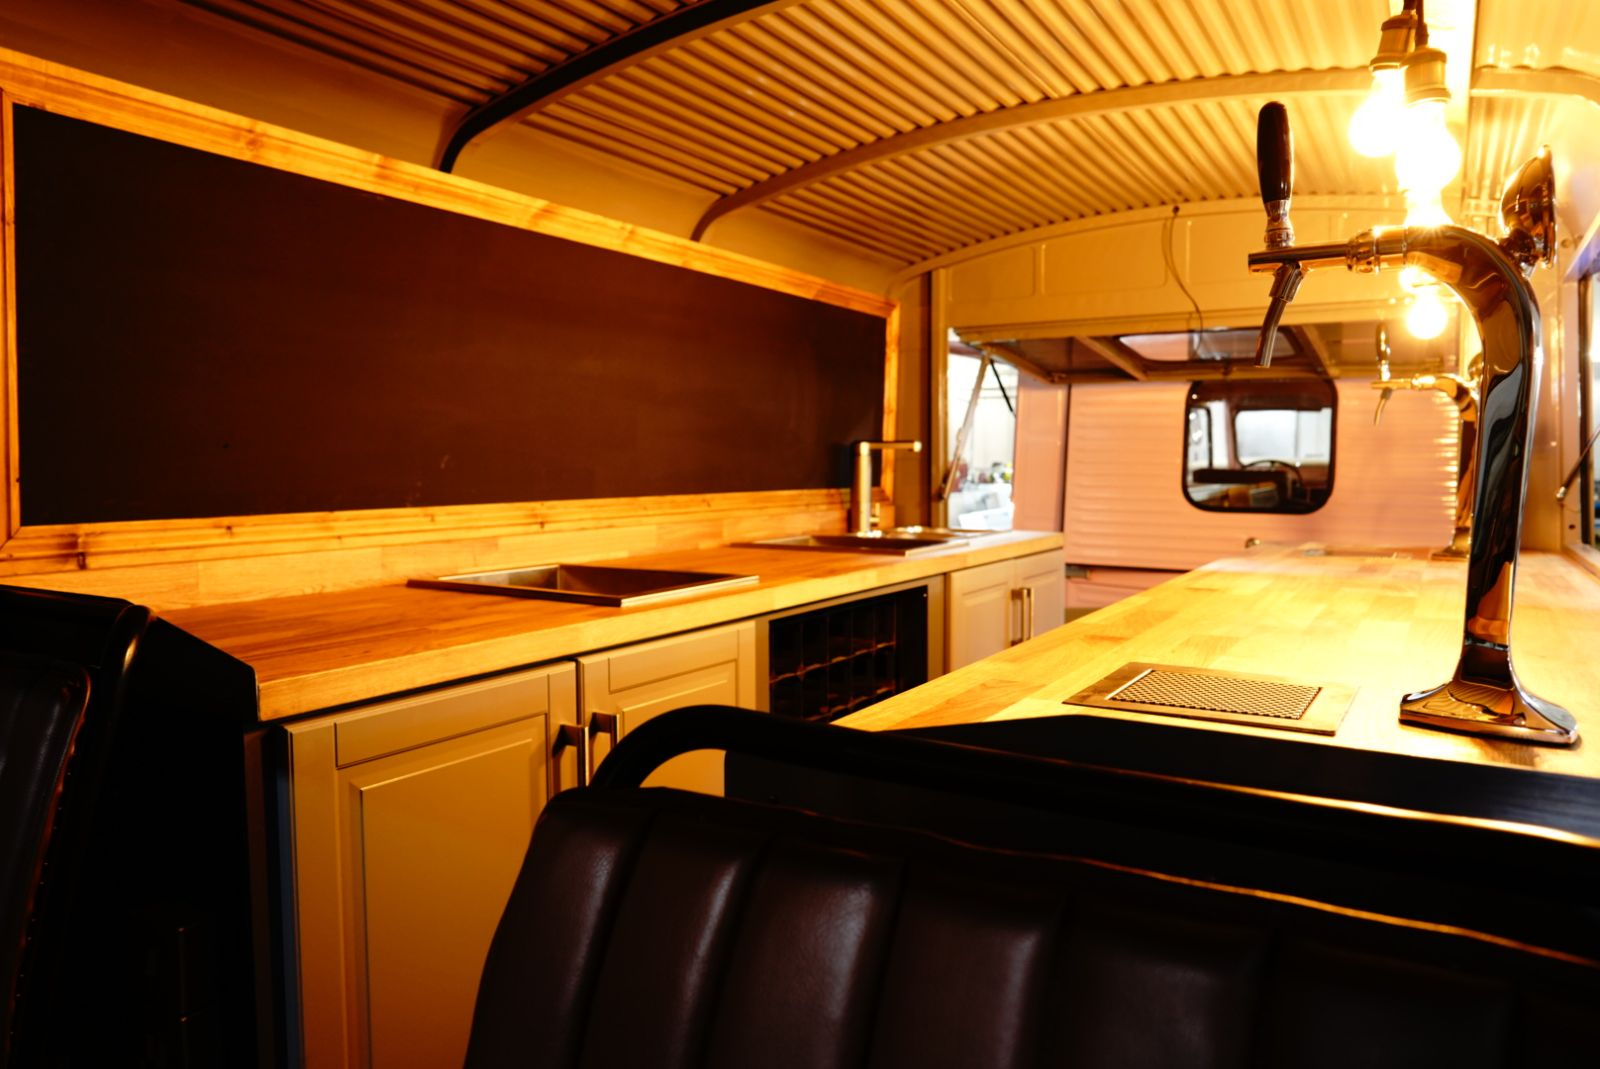 Citroen HY Classic Vintage Vehicle Catering Food Truck Conversion